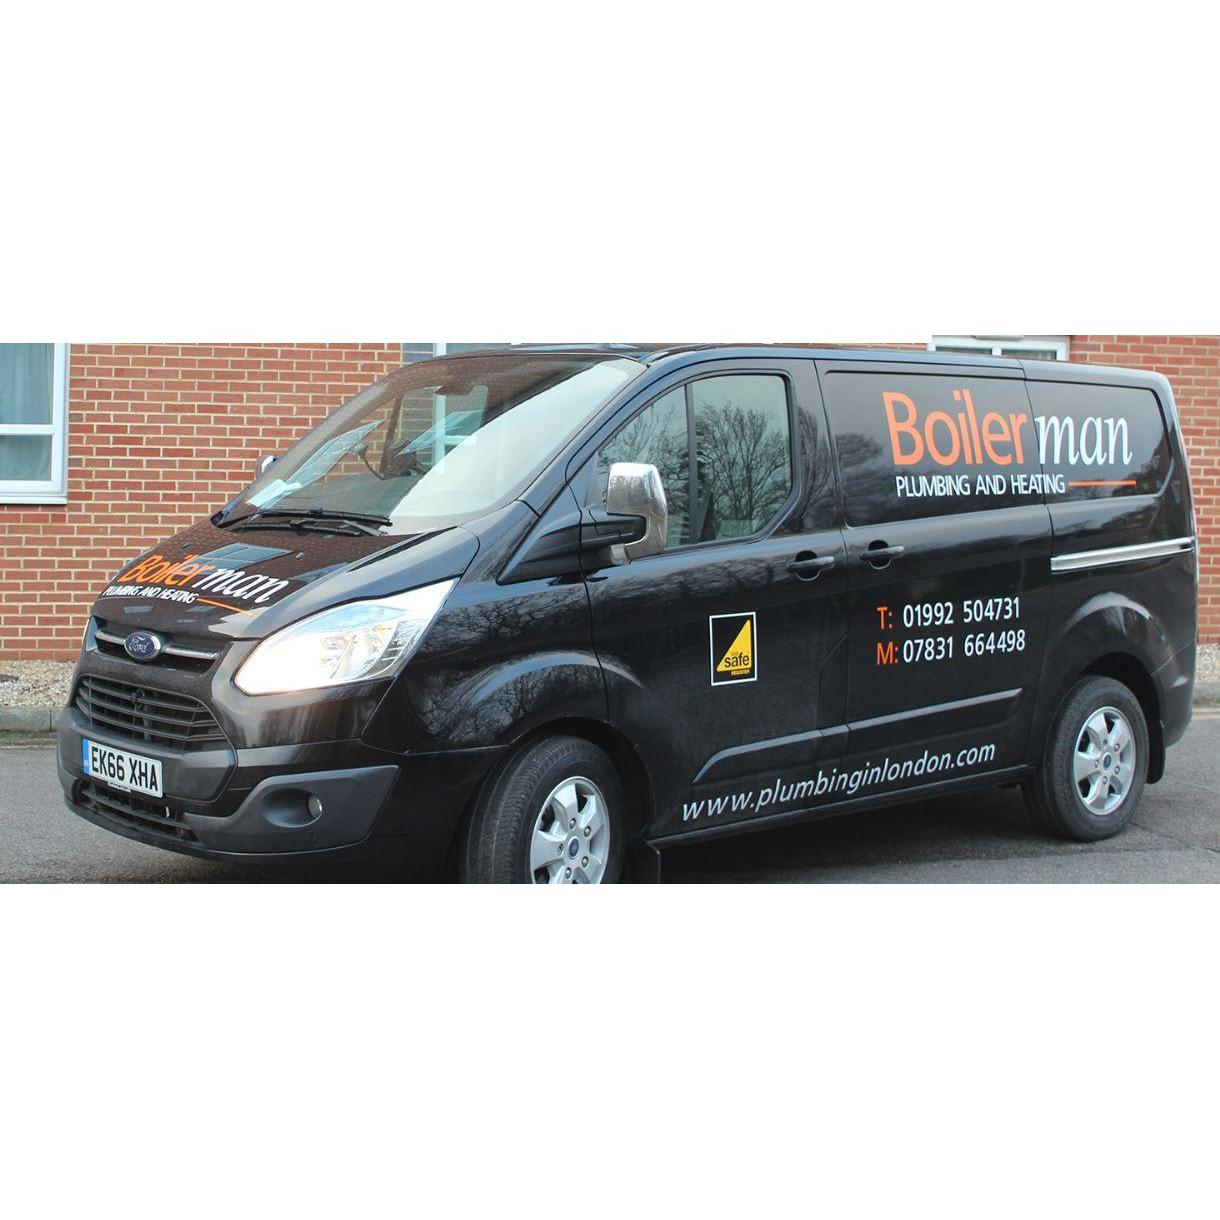 Boilerman (Herts) Ltd - Hertford, Hertfordshire SG13 7TB - 01992 504731 | ShowMeLocal.com